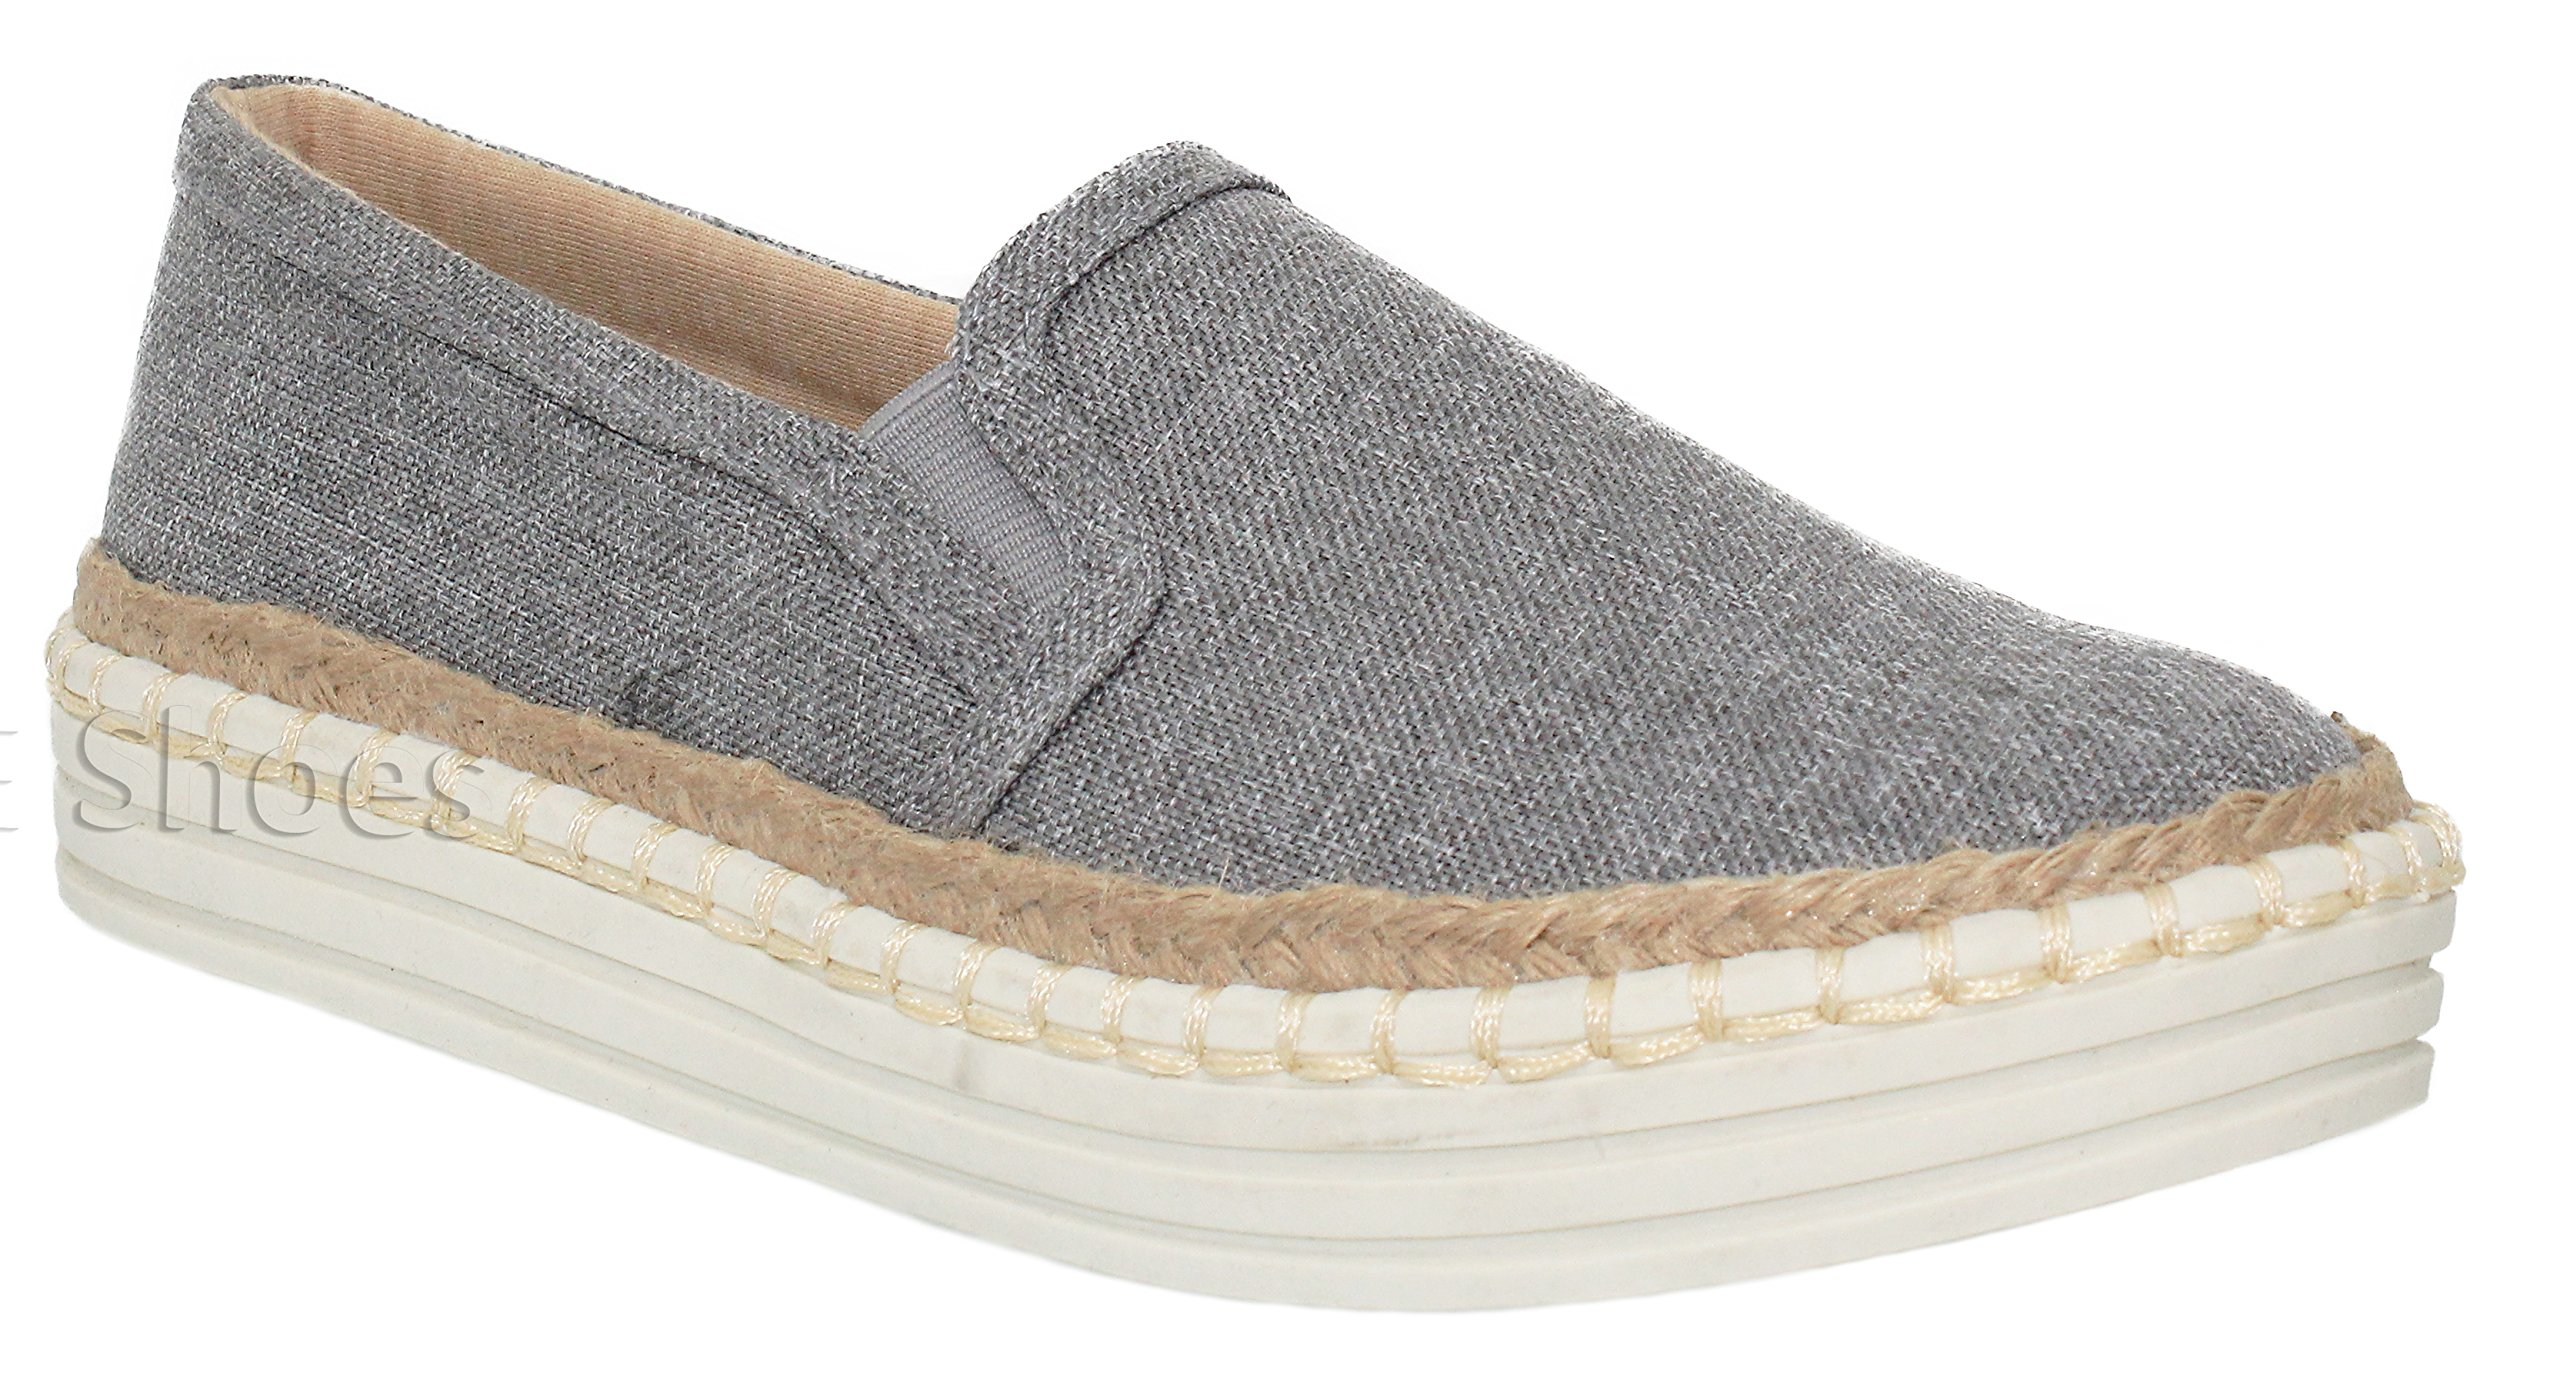 MVE Shoes Womens Perforated Slip-On Fashion Sneaker